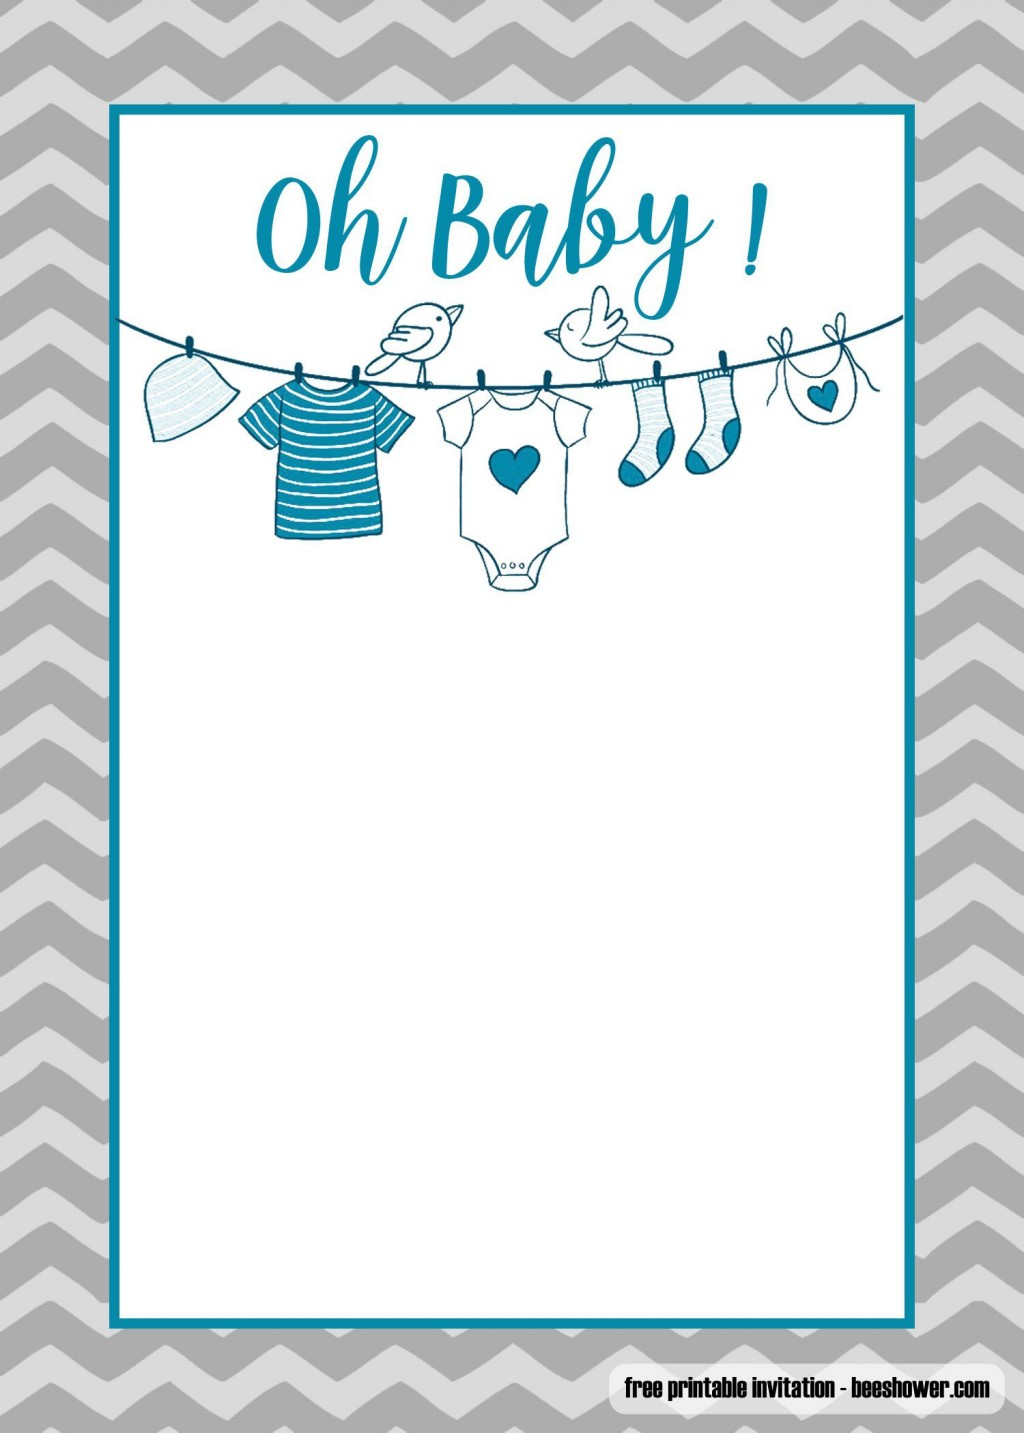 007 Sensational Baby Shower Invite Template Word Highest Clarity  Invitation Wording Sample Free ExampleLarge